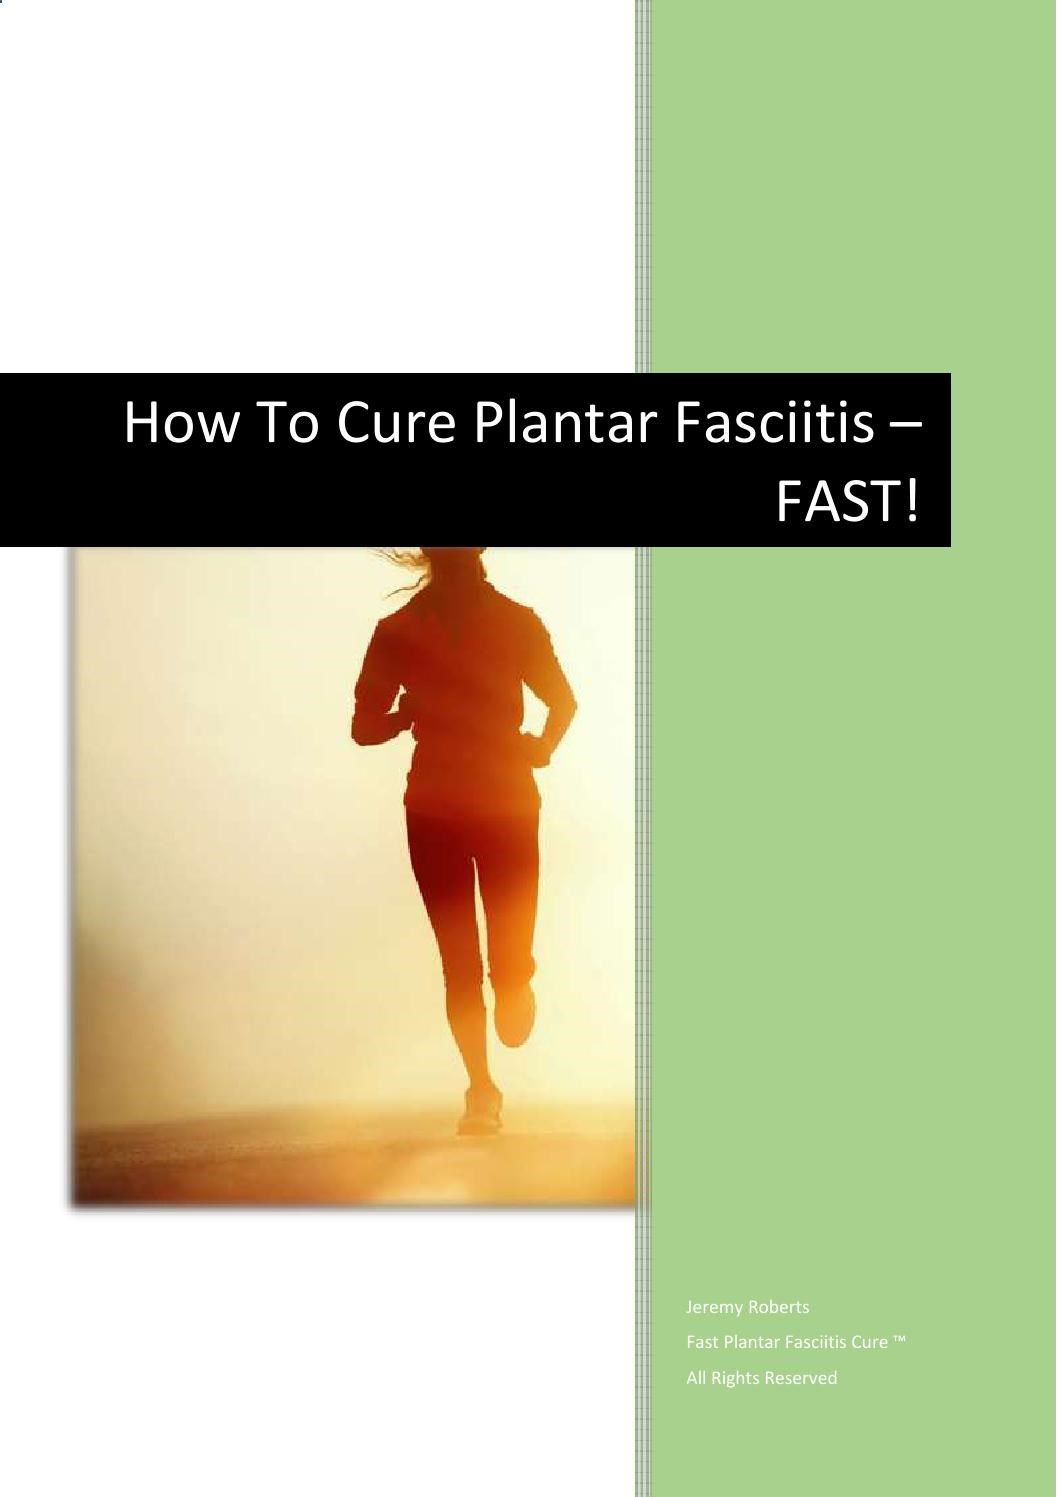 Discover the truth and the facts about Fast Plantar Fasciitis Cure™ PDF, eBook…